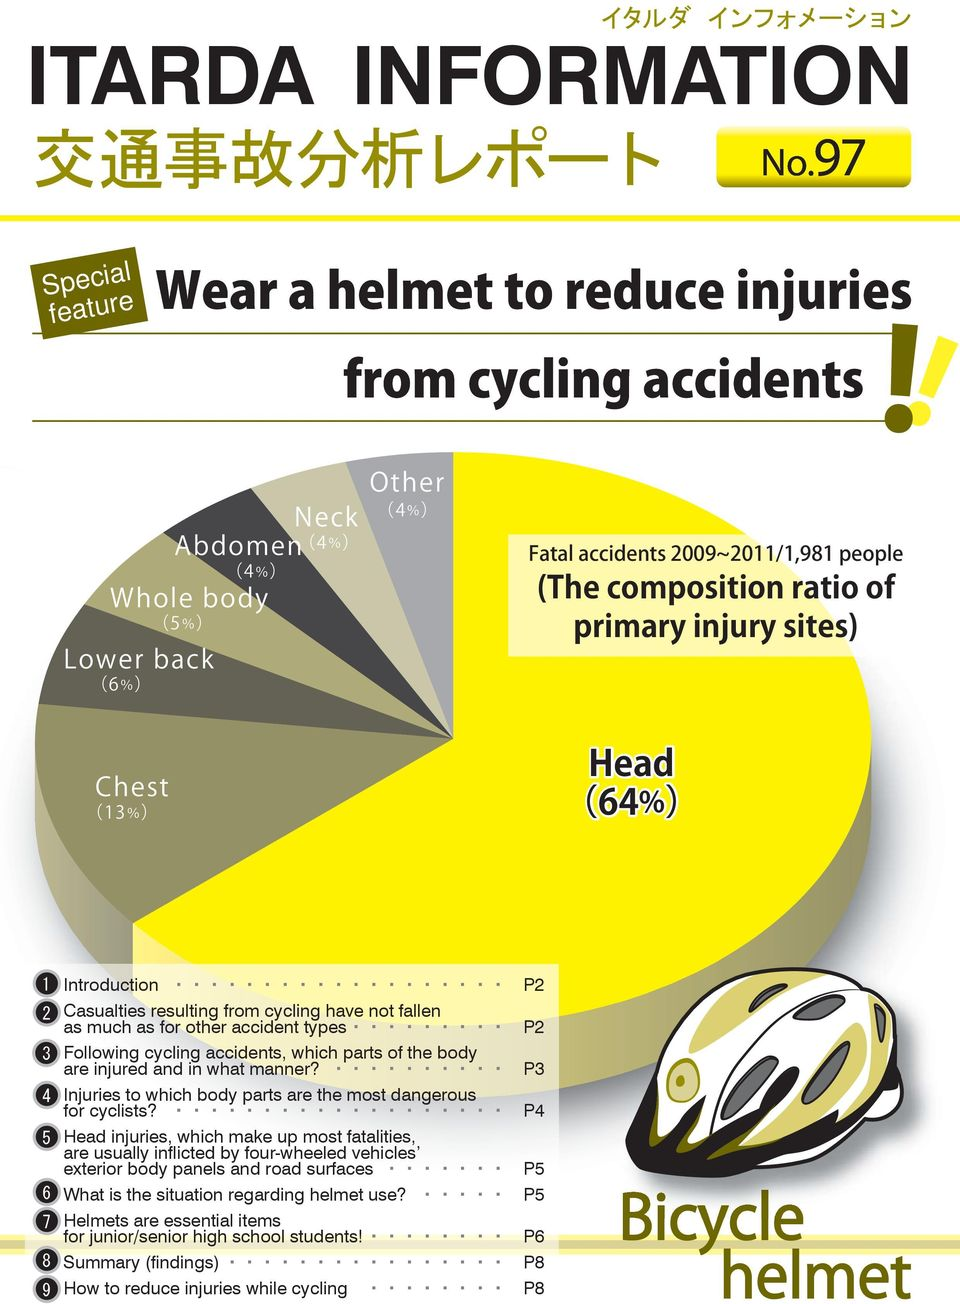 which parts of the body are injured and in what manner? P3 Injuries to which body parts are the most dangerous for cyclists?